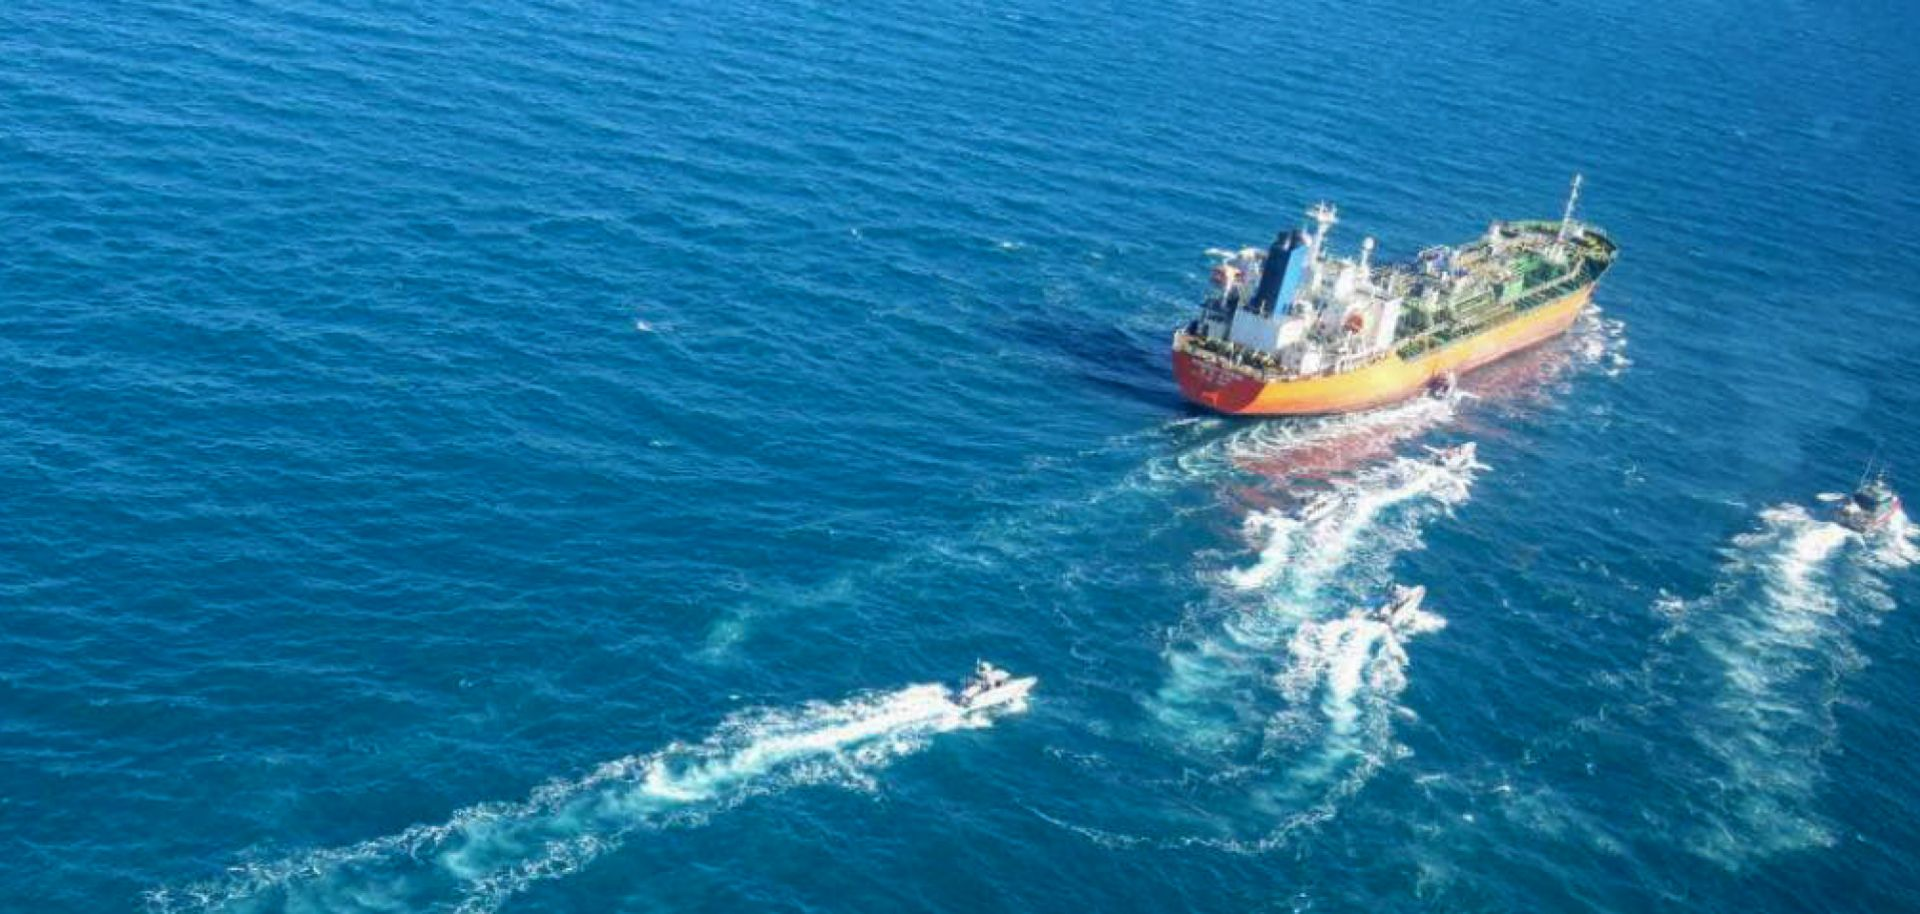 A South Korean-flagged tanker is escorted in the Persian Gulf after being seized by the Iranian navy on Jan. 4, 2021.